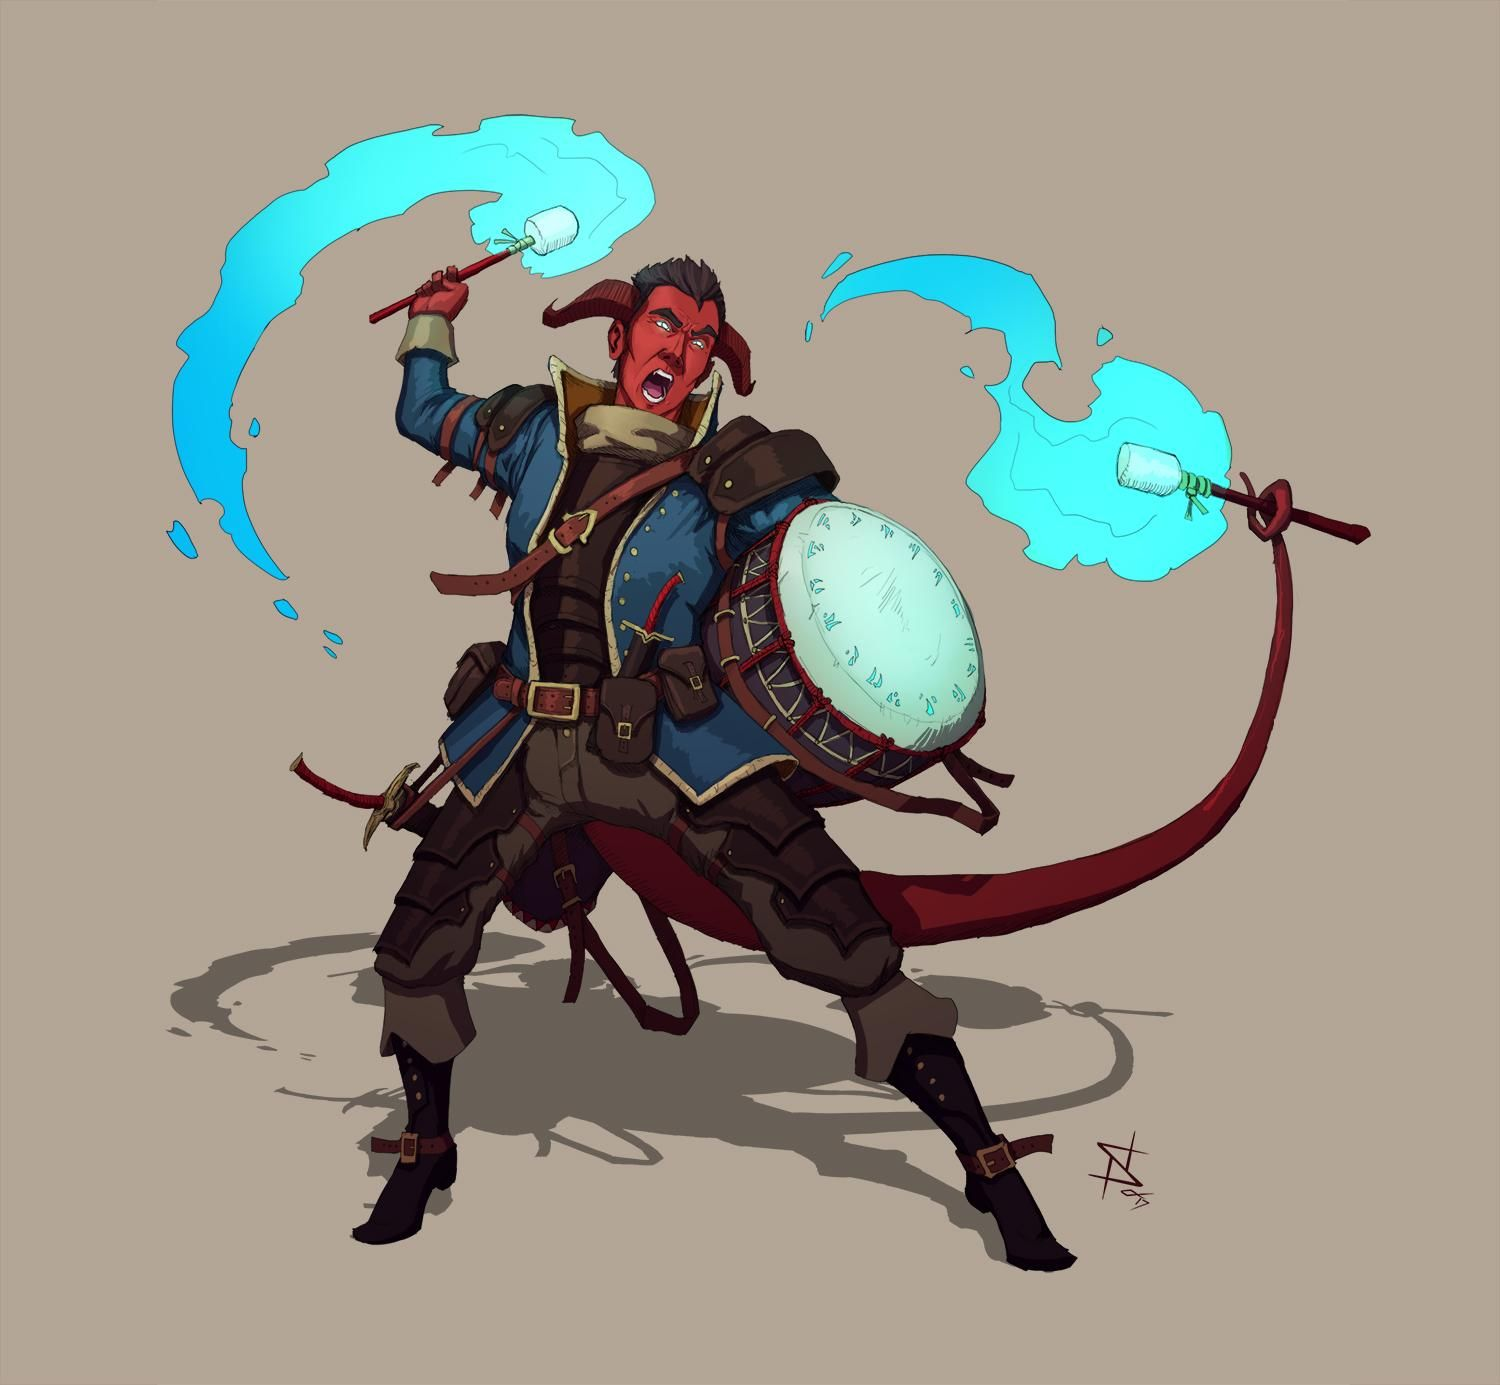 Tiefling Rogue Commission Characterdrawing Concept Art